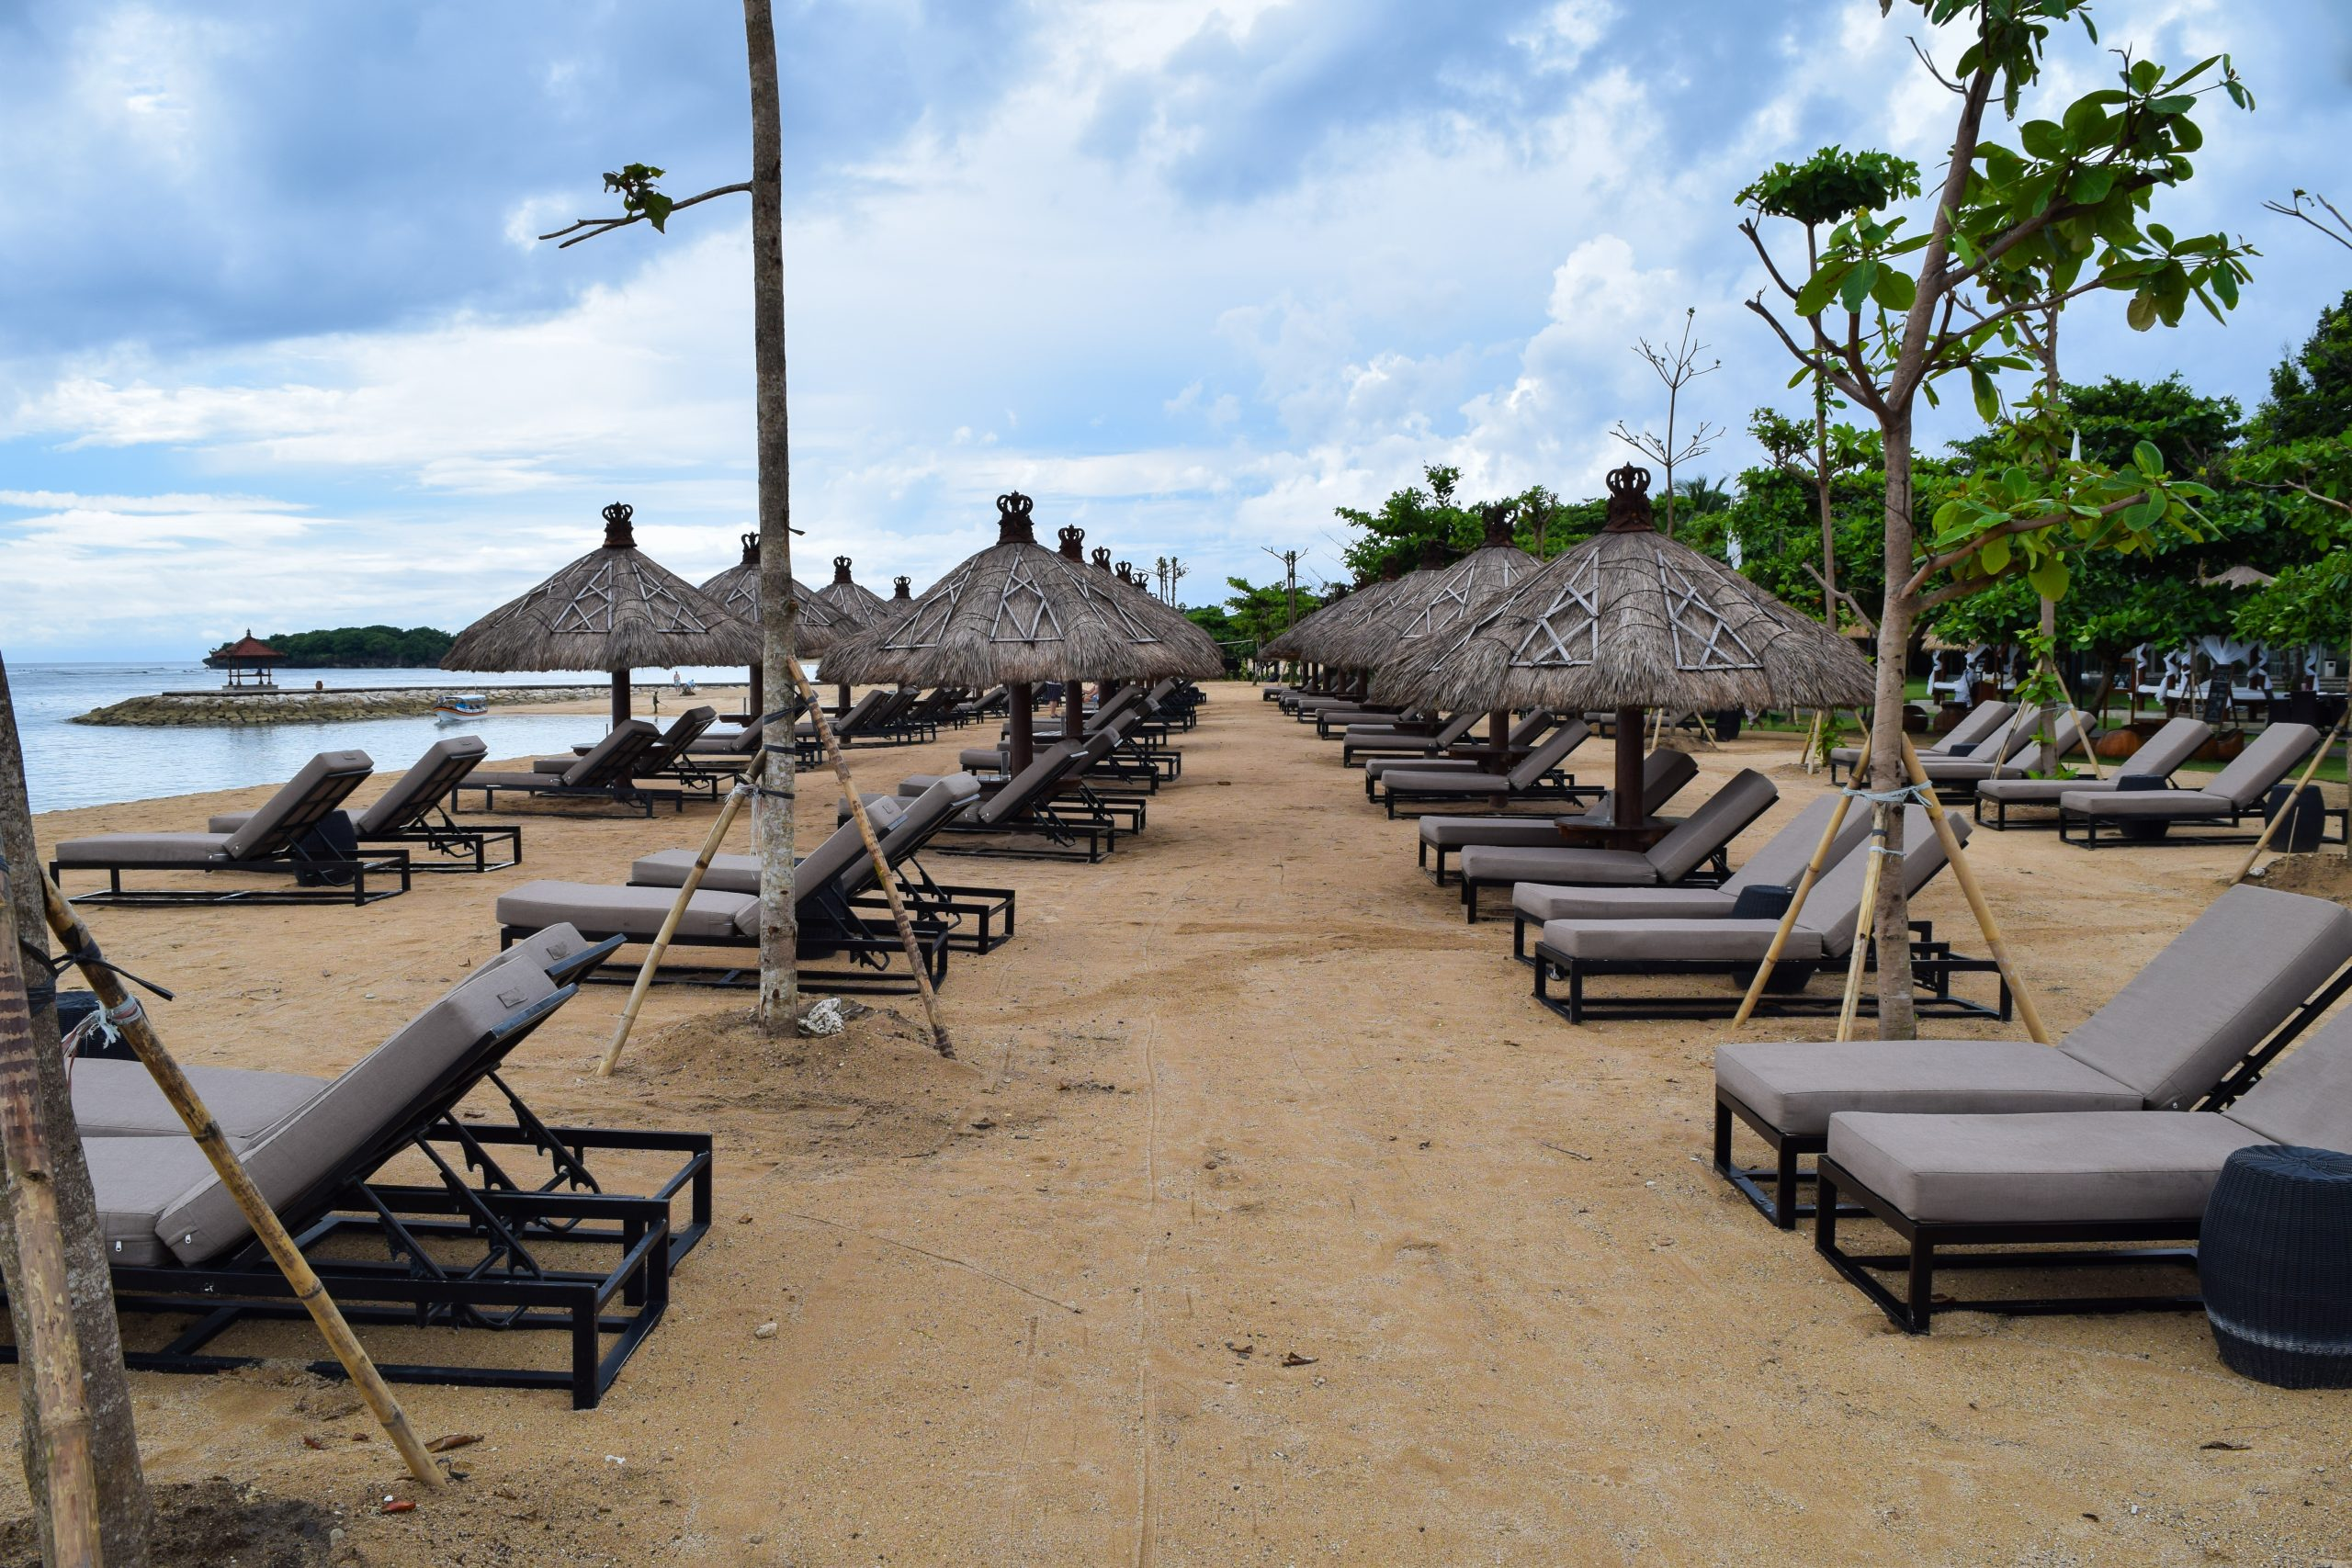 Resting chairs at a beach in Bali